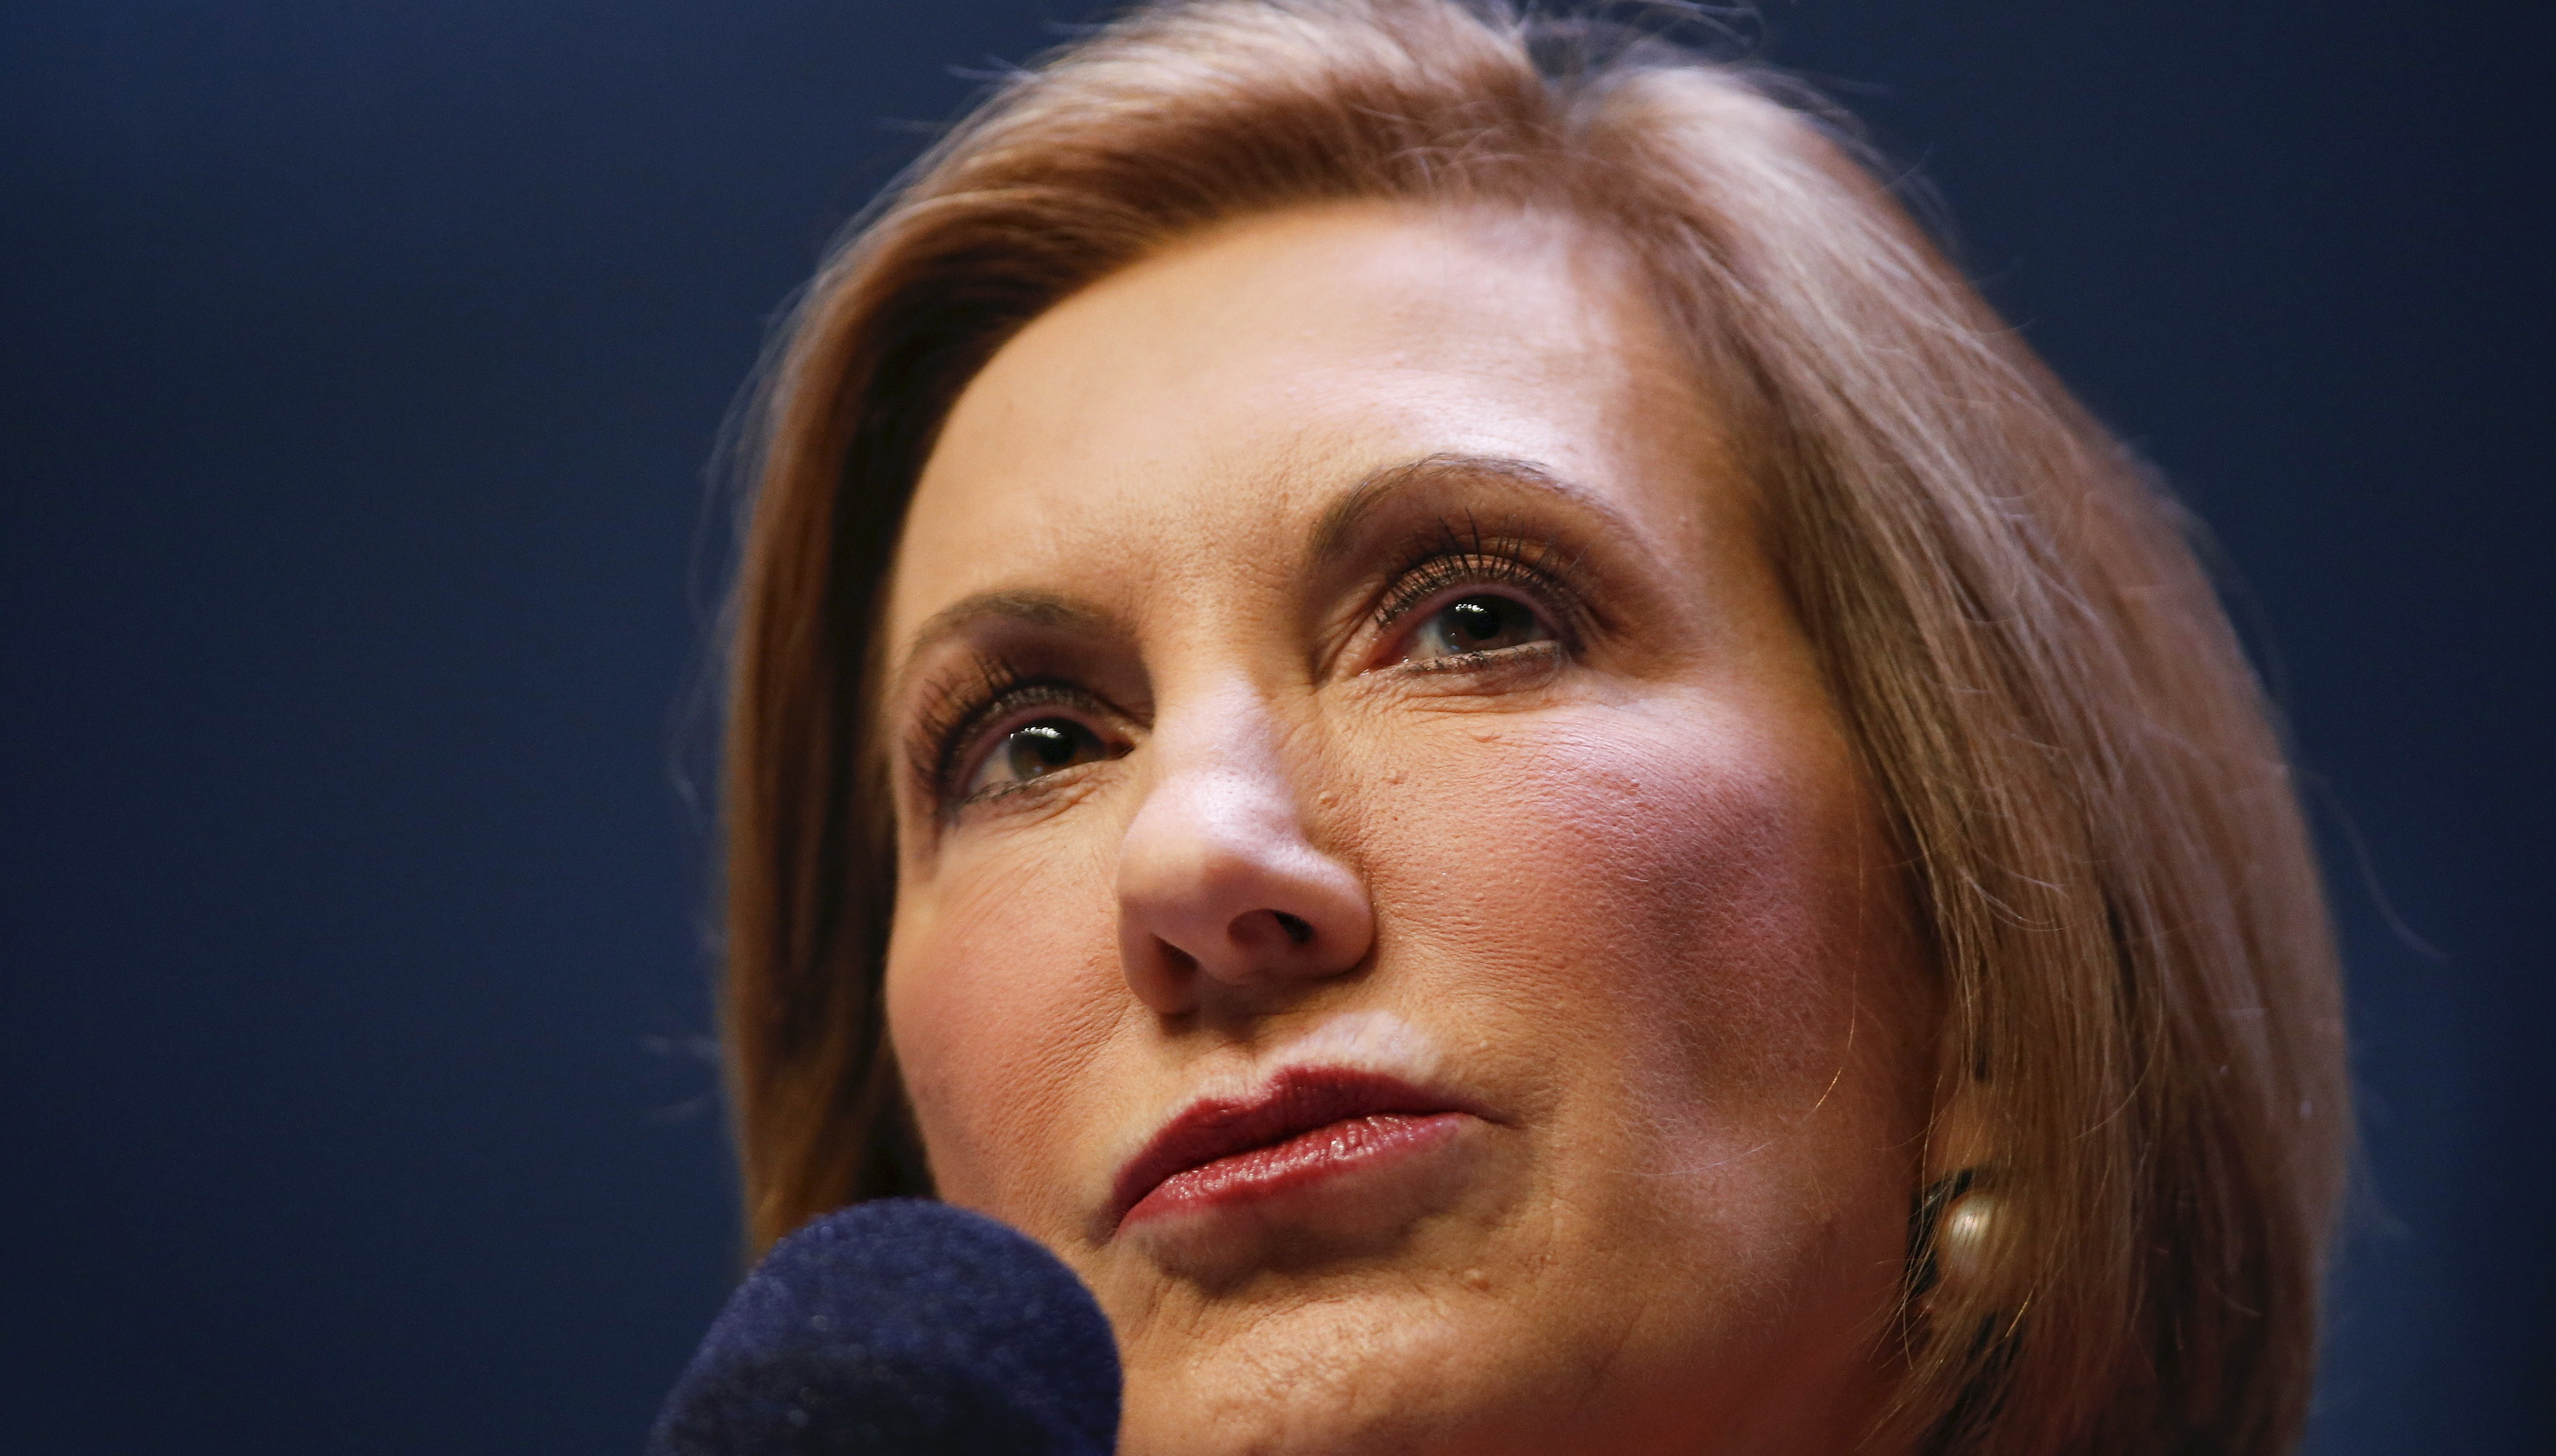 U.S. Republican presidential candidate Fiorina speaks during the Heritage Action for America presidential candidate forum in Greenville